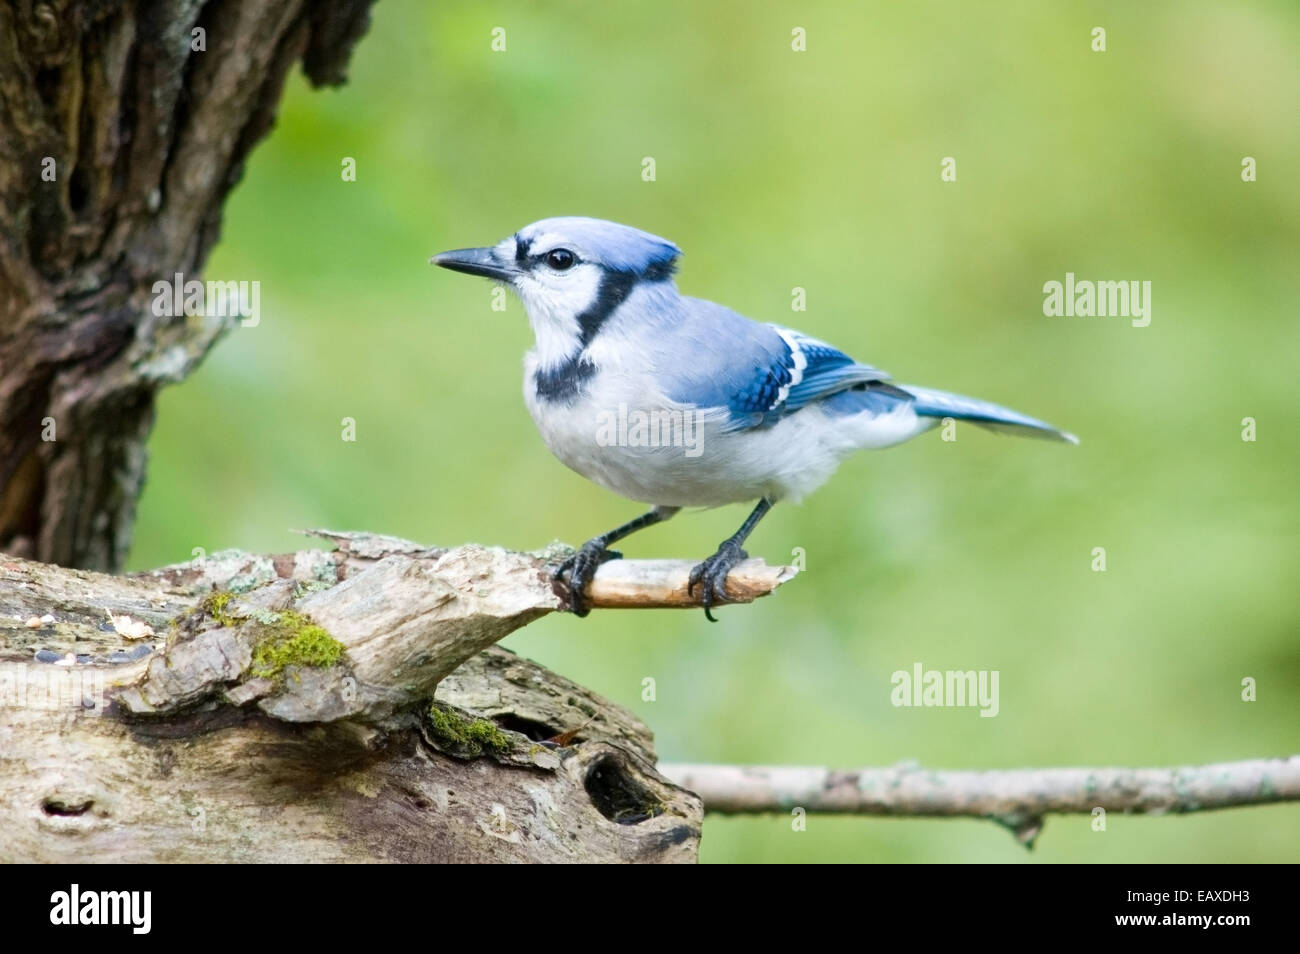 A blue jay perched on a tree branch. Stock Photo